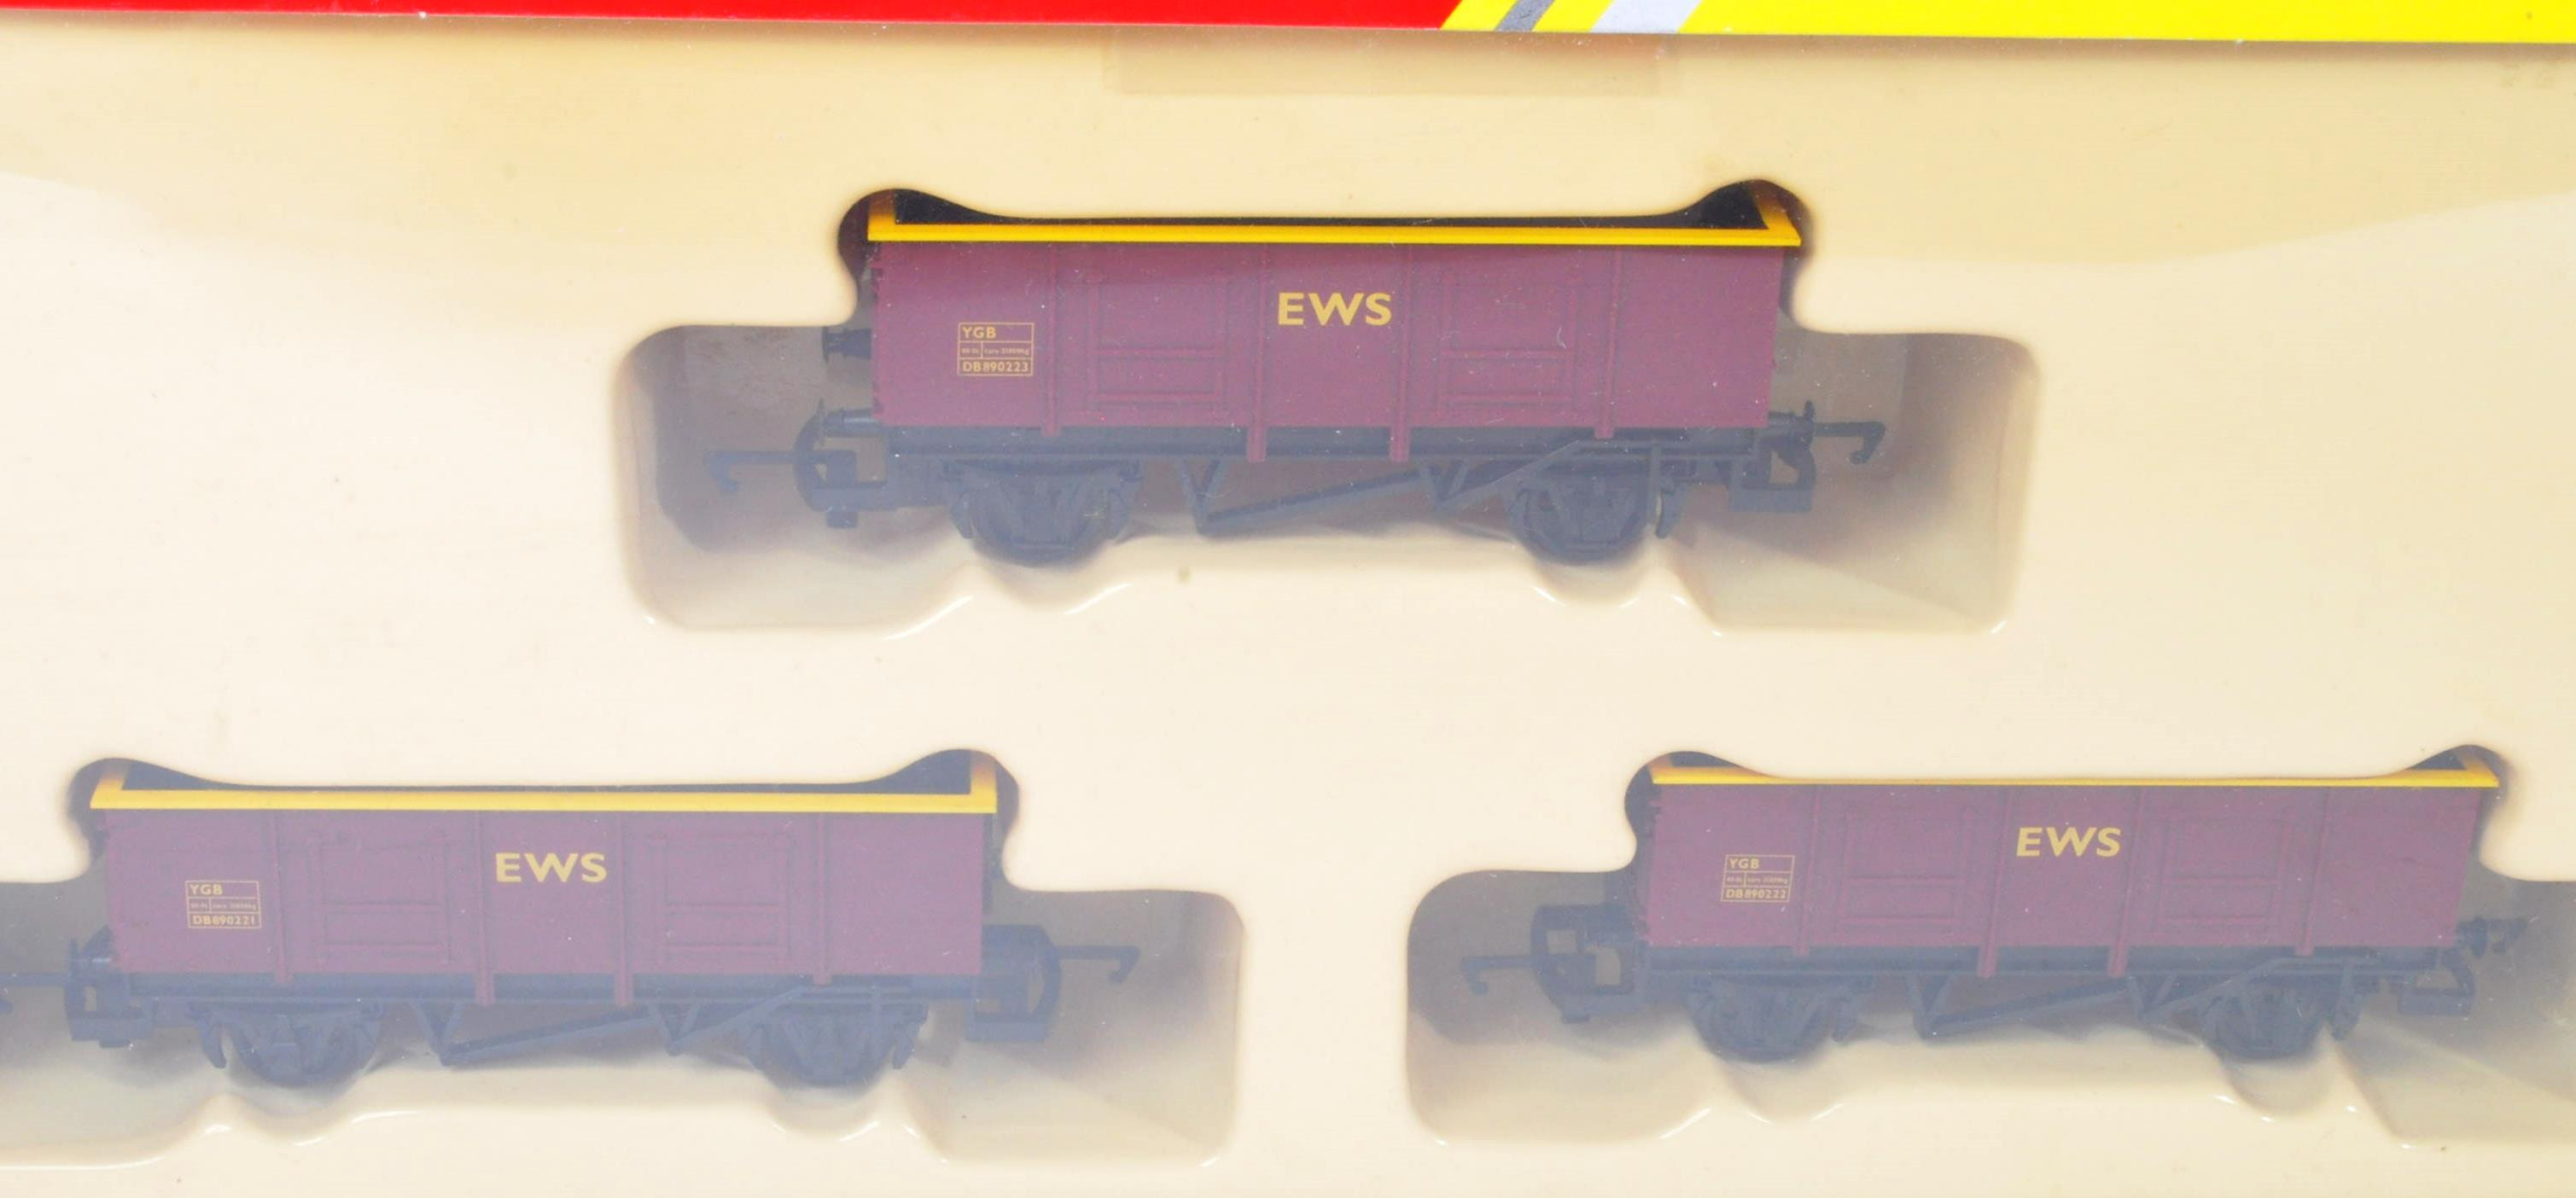 COLLECTION OF HORNBY 00 GAUGE MODEL RAILWAY ROLLING STOCK SETS - Image 2 of 5